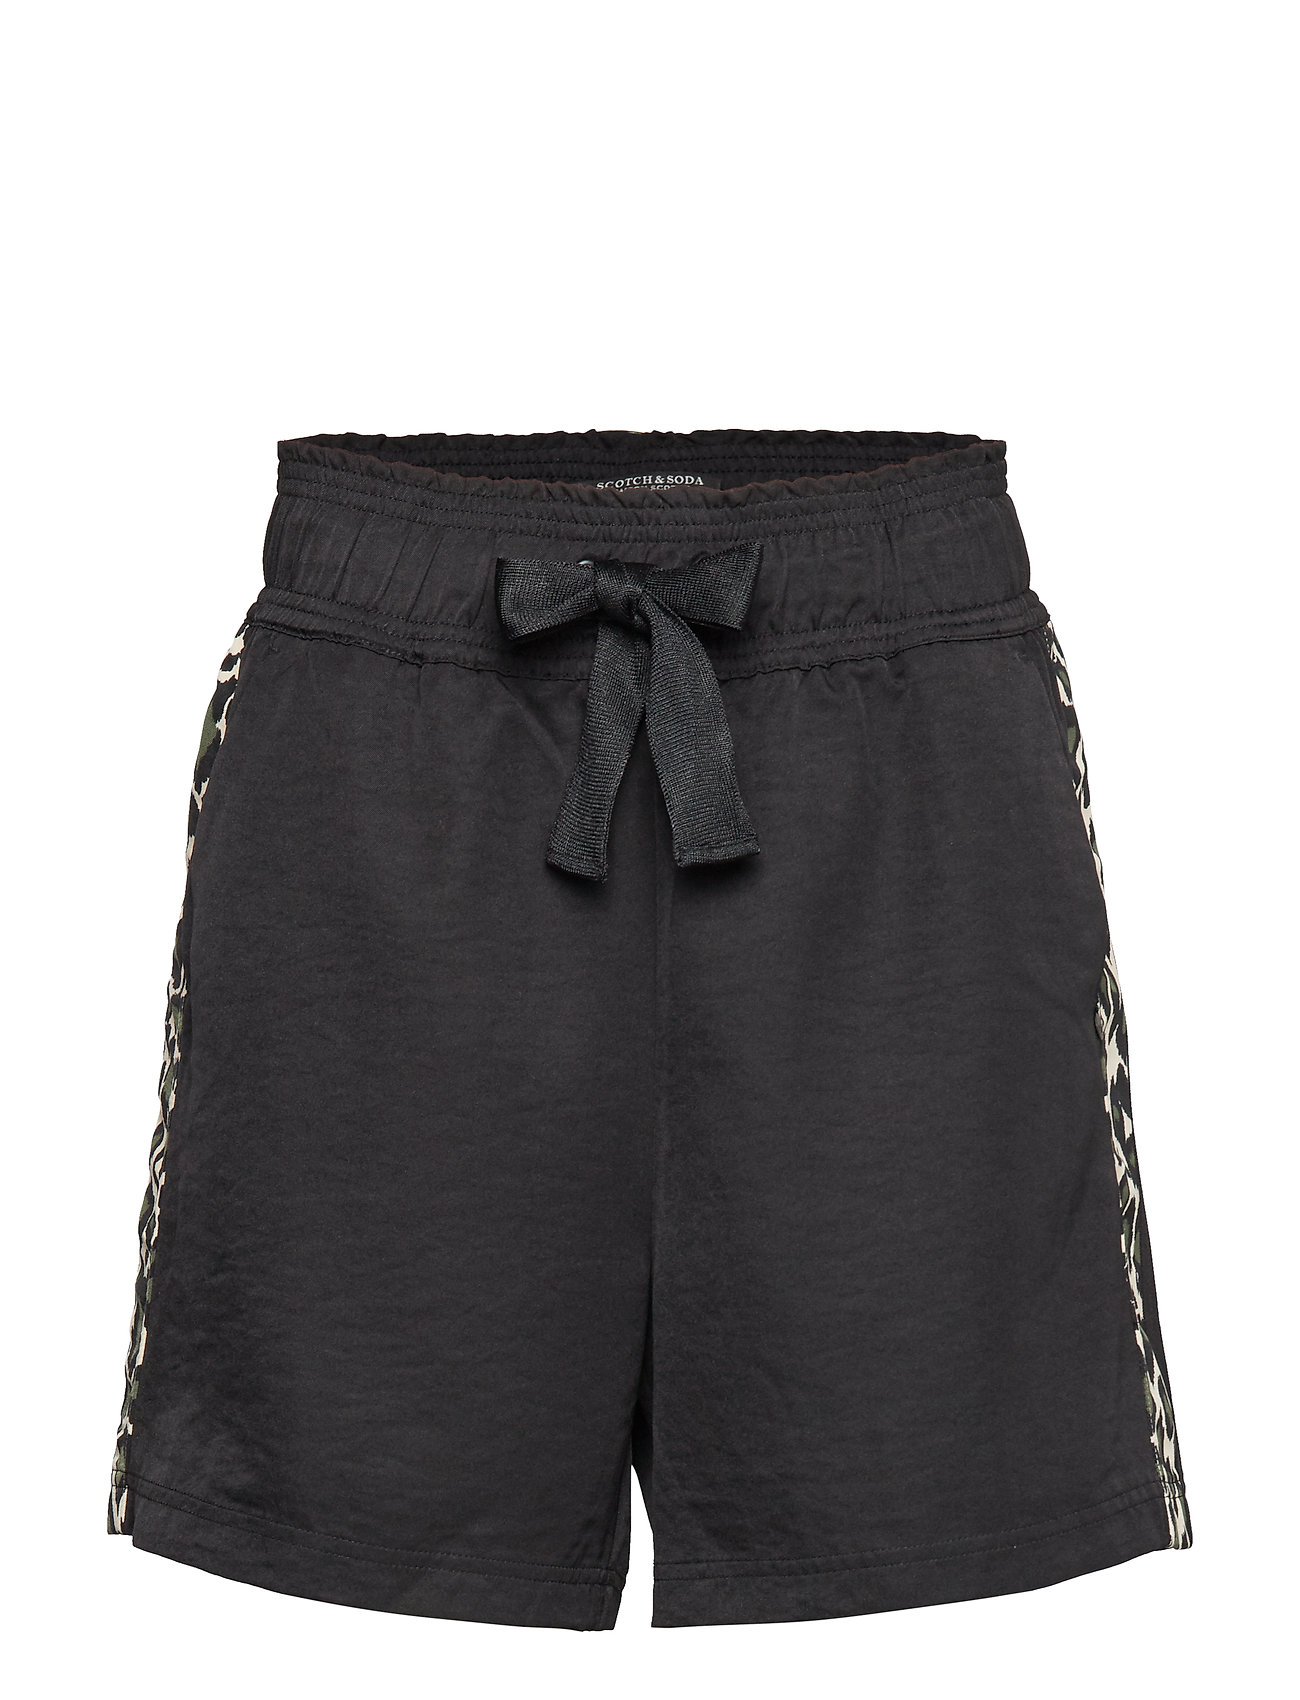 Scotch & Soda Longer length drapey shorts with contrast side panels Shorts